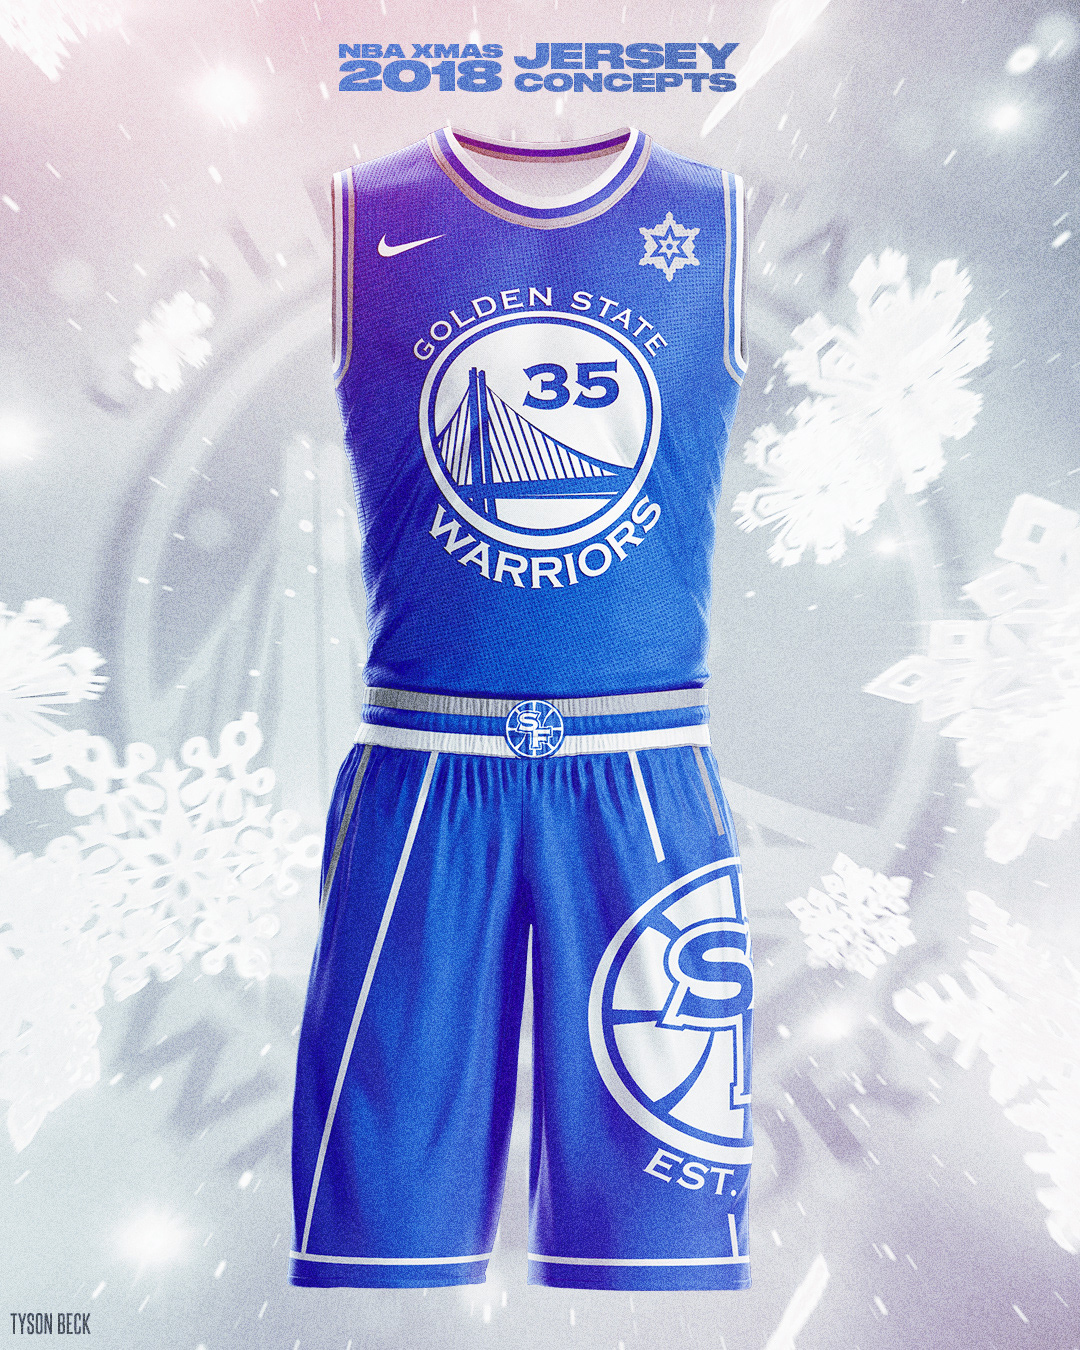 22eea11084d NBA x NIKE 2018 Christmas Day - Jersey Concepts on Behance